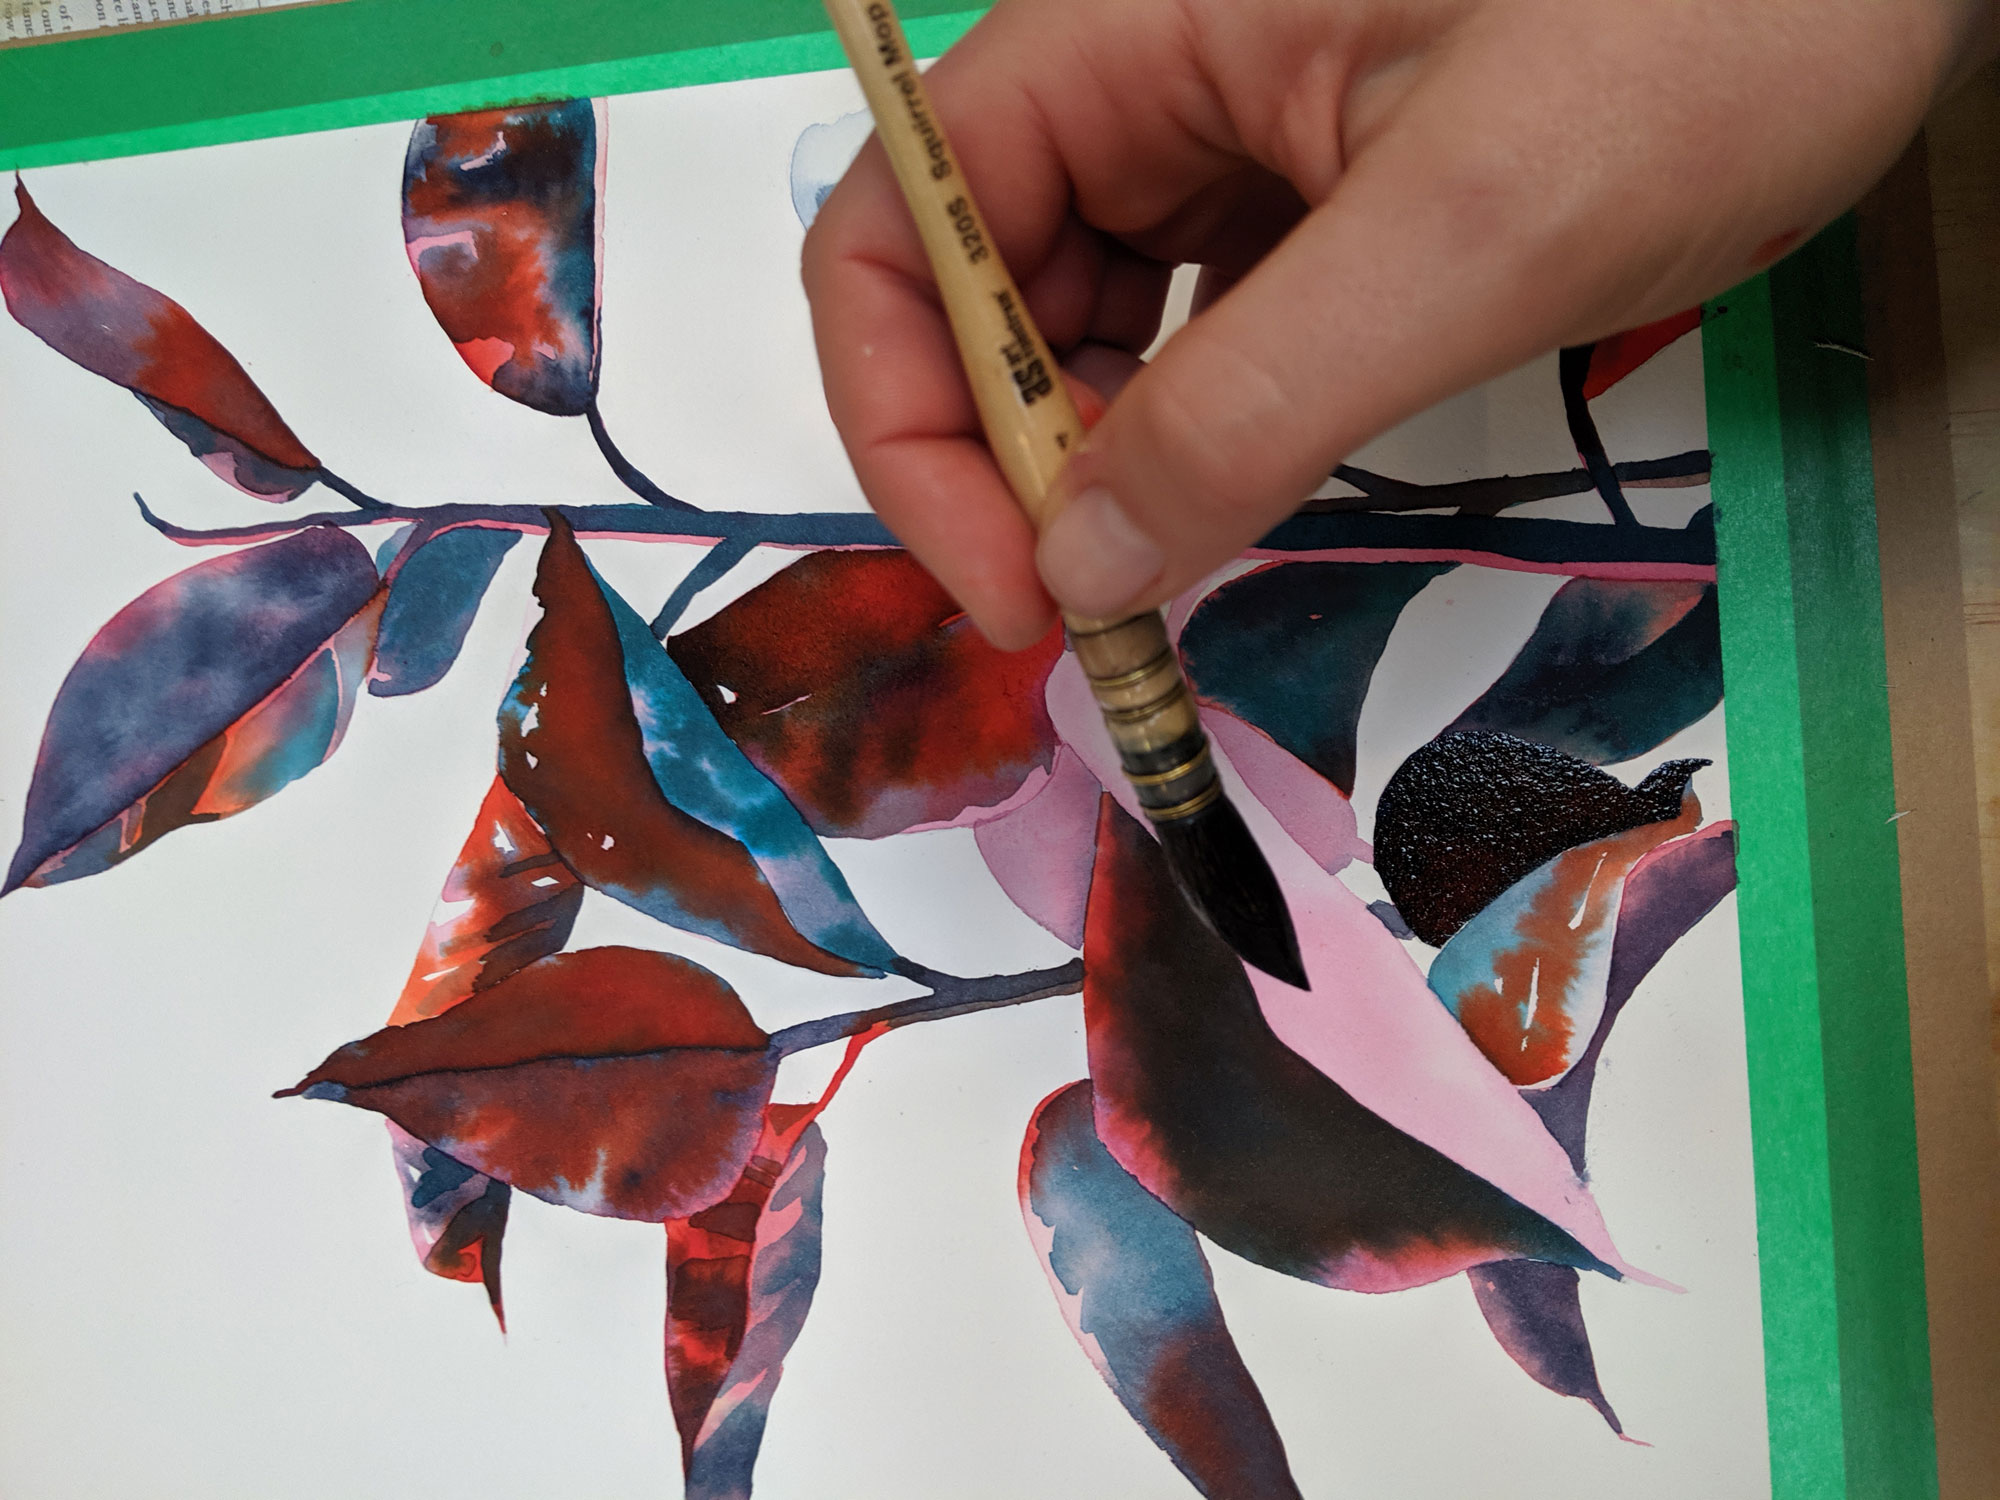 Watercolour painting being painted, featuring an artist's hand and paintbrush.